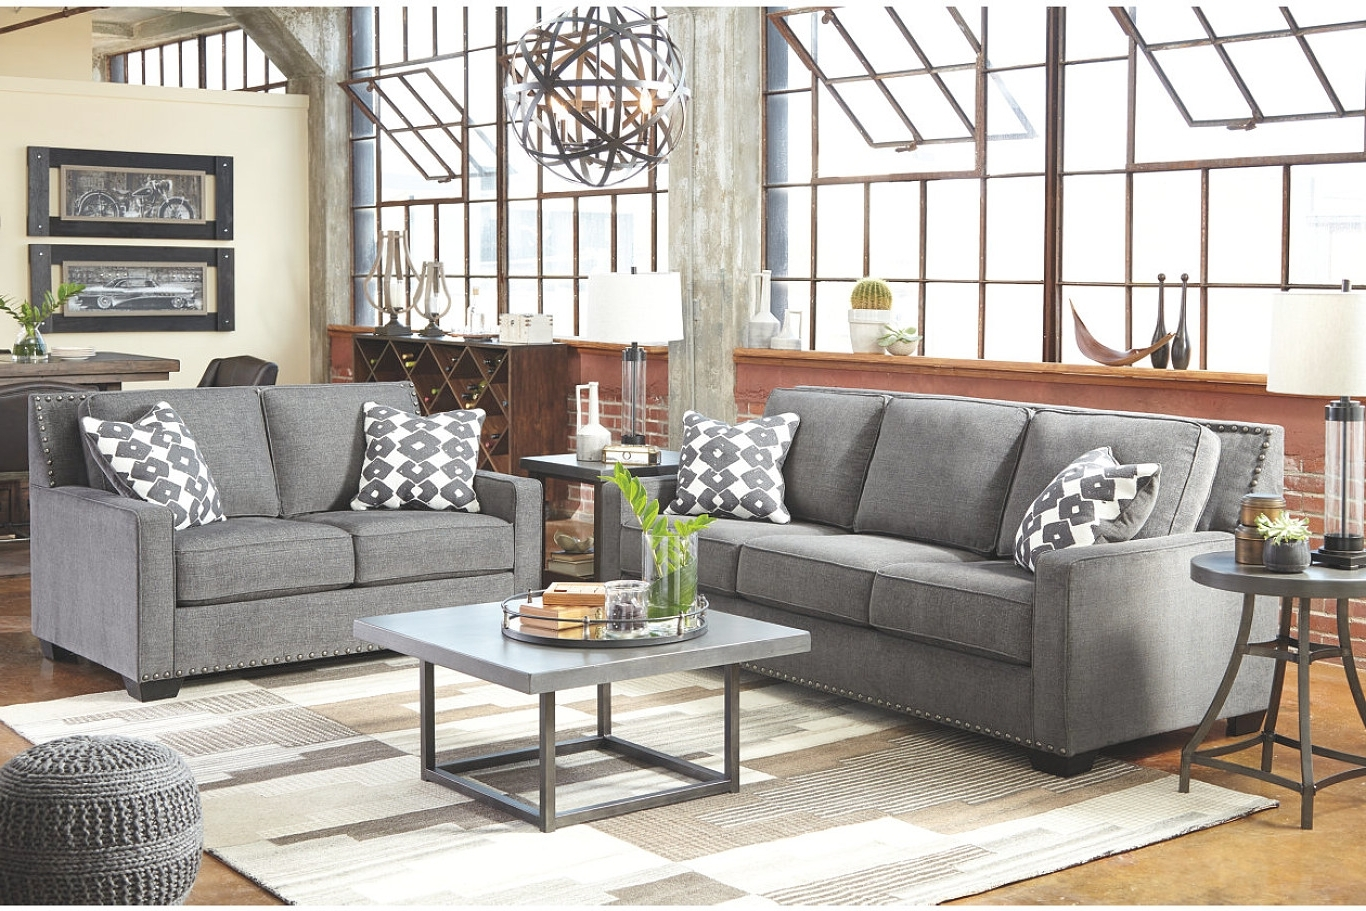 Well Known Discount Sofas Ashley Furniture Living Room Sets Sectionals Rent A Regarding Nebraska Furniture Mart Sectional Sofas (View 11 of 15)